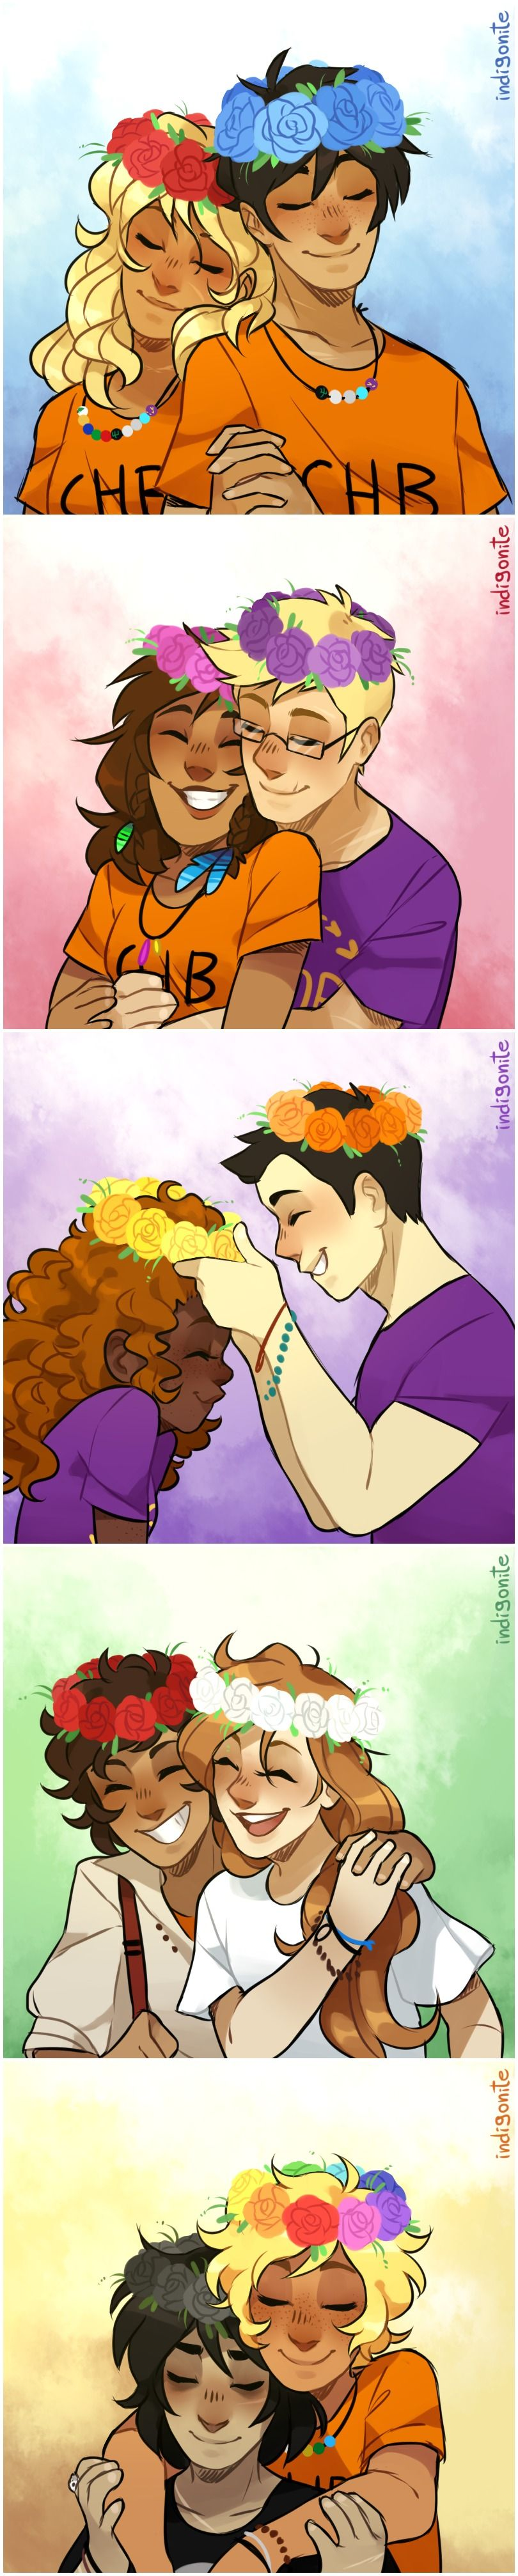 Flower crowns for everyone art by indigonite rick riordan in flower crowns for everyone art by indigonite piper percy jackson percy jackson couples izmirmasajfo